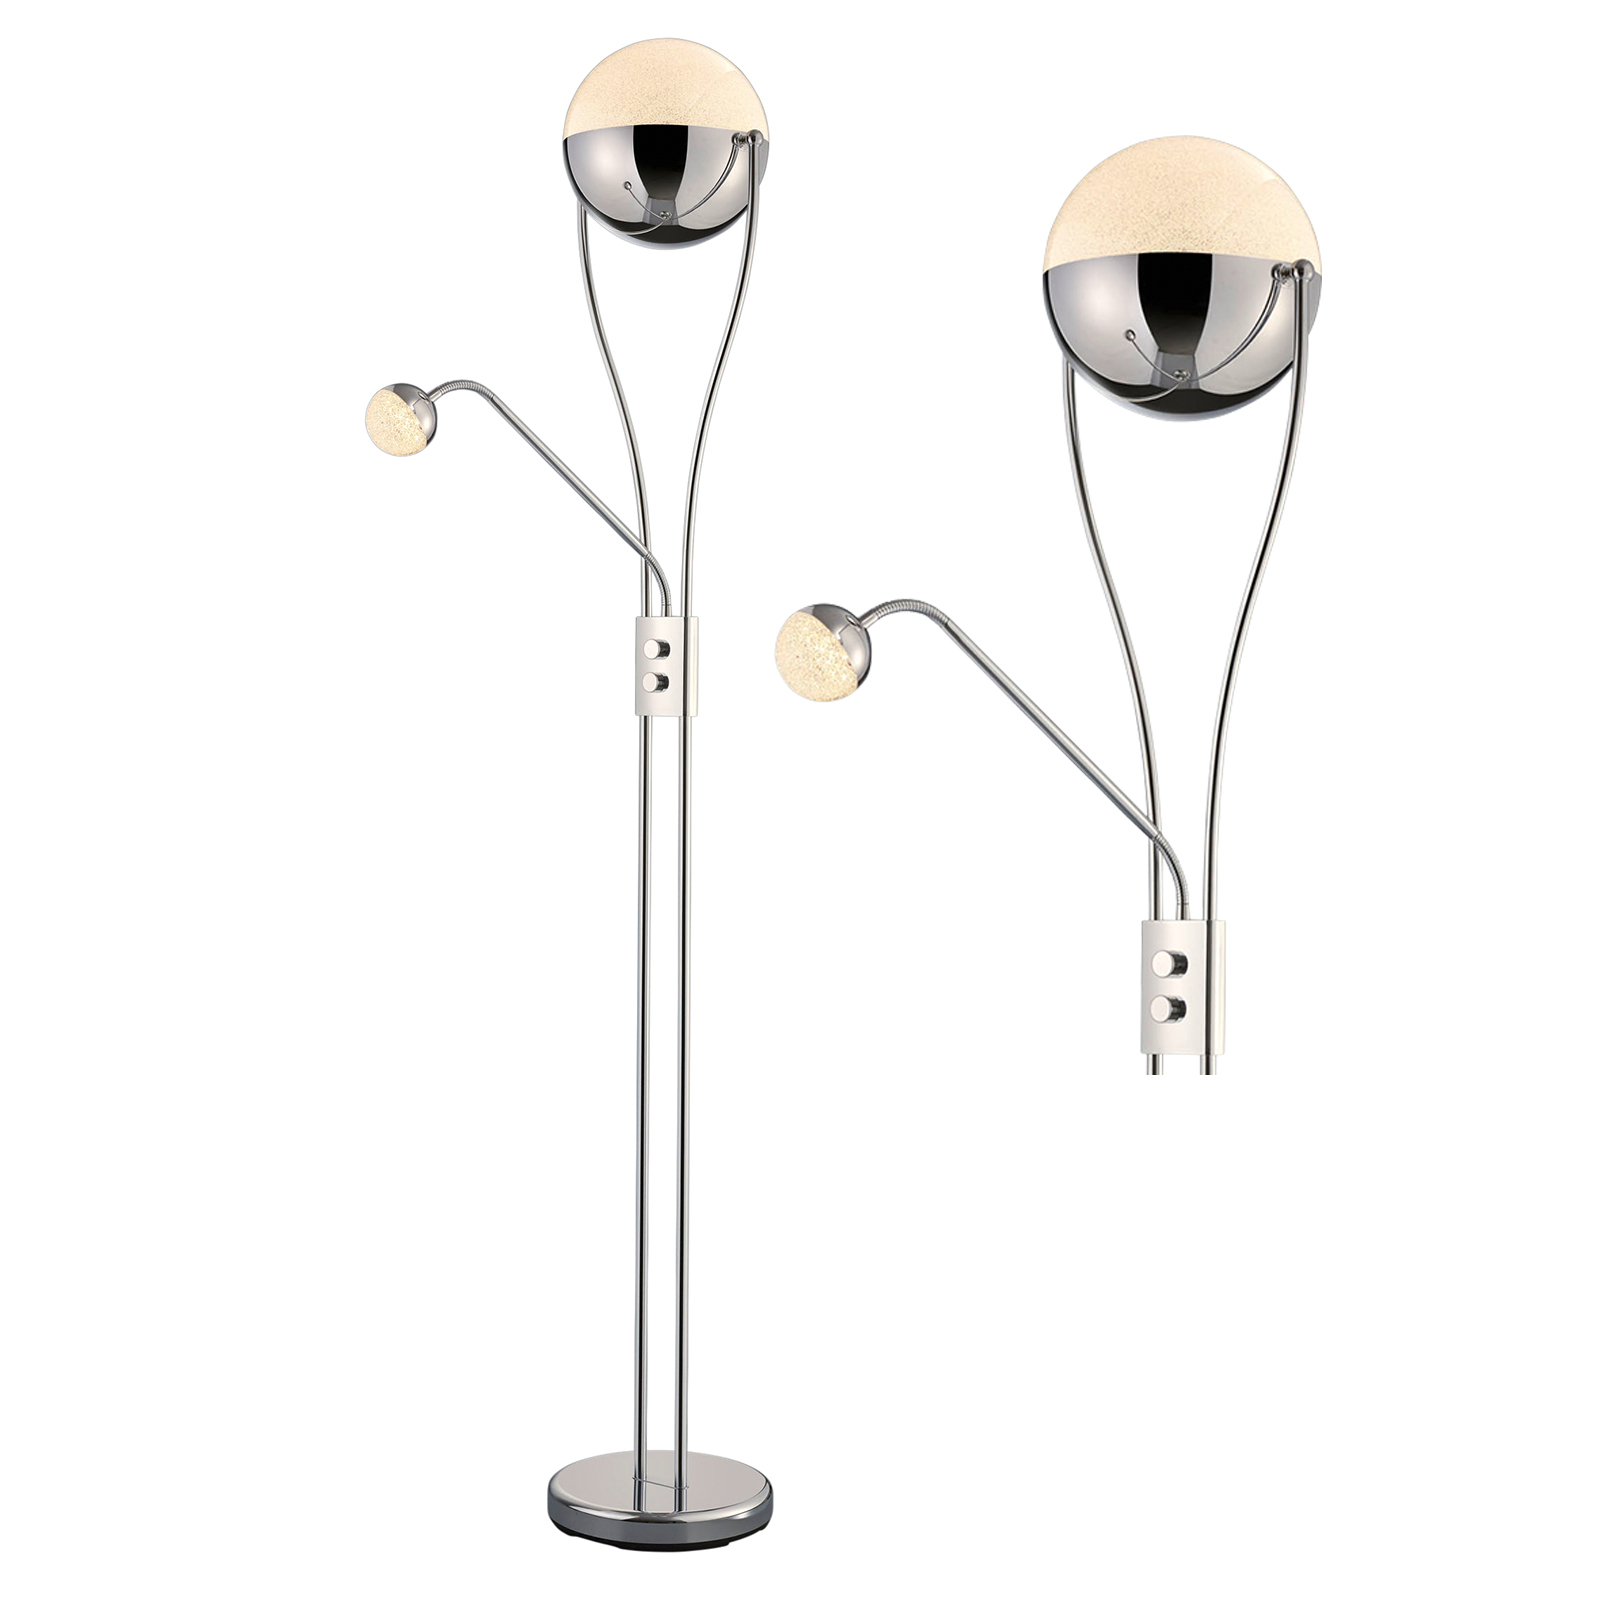 Full Size of Stehlampe Dimmbar Schlafzimmer Stehlampen Wohnzimmer Wohnzimmer Stehlampe Dimmbar